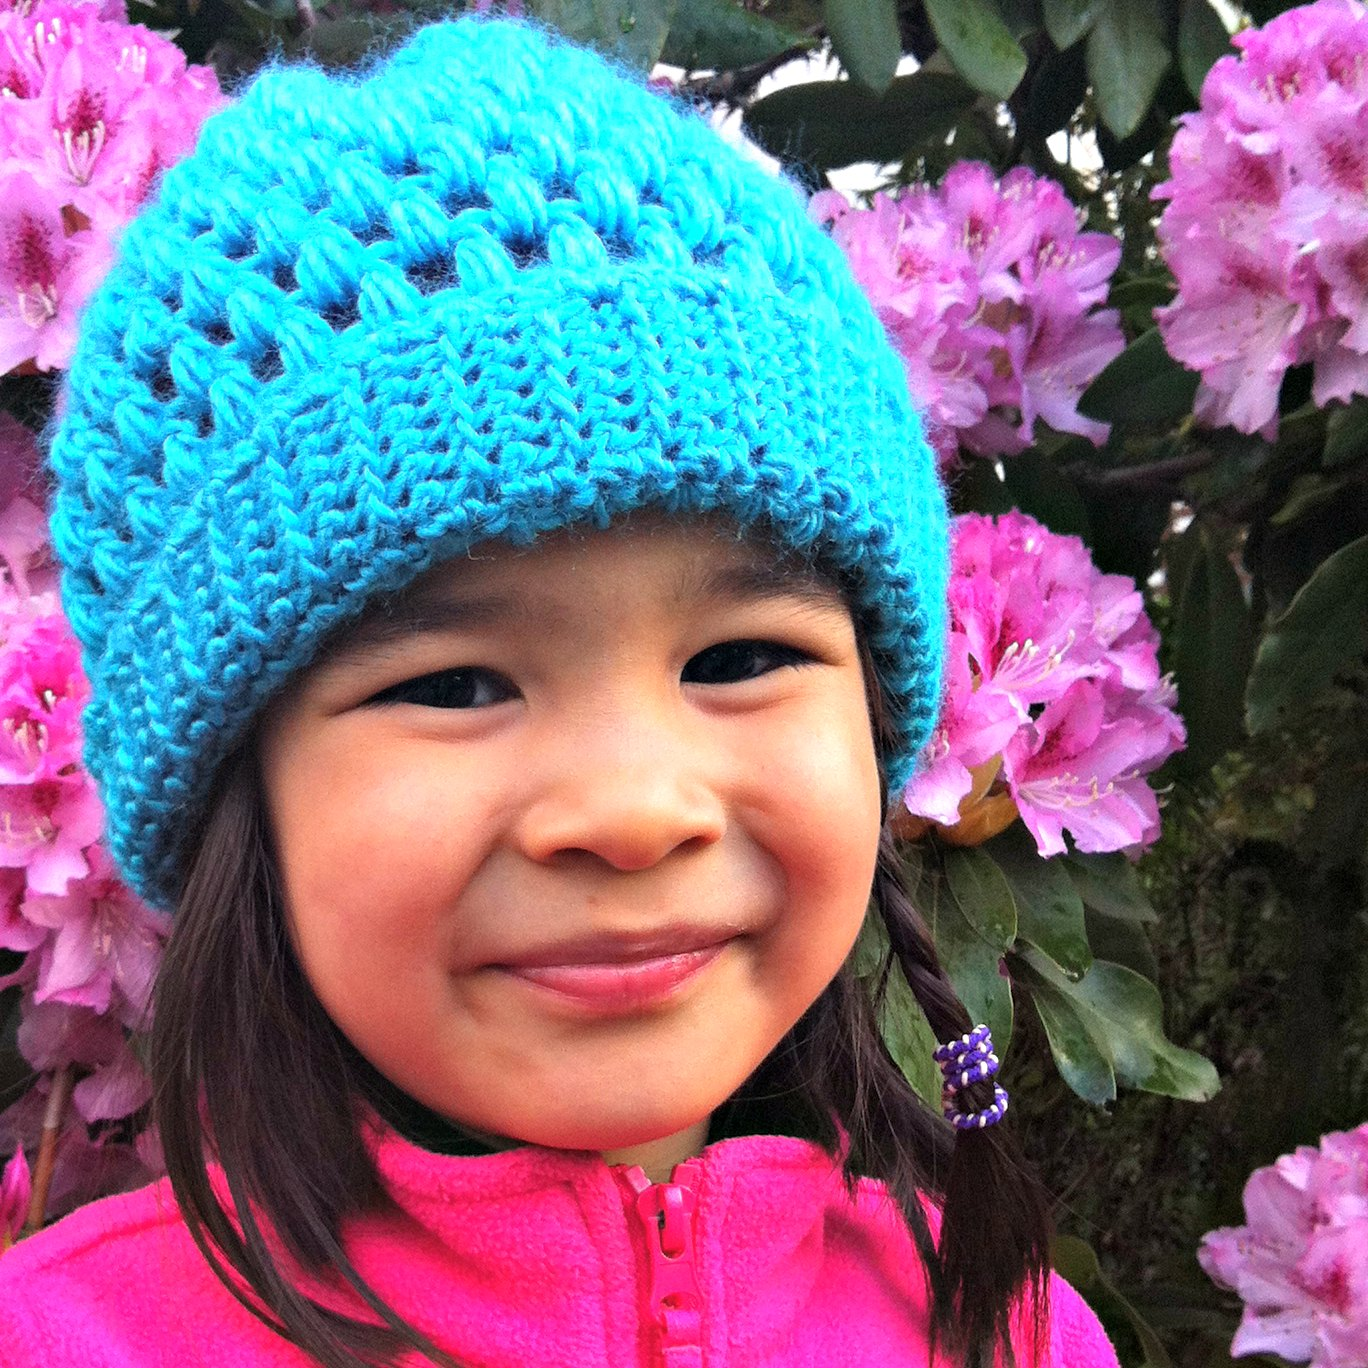 Crochet Patterns Free Childrens Hats : Sew Creative Crocheted Kids Slouch Hat Pattern- Great for ...